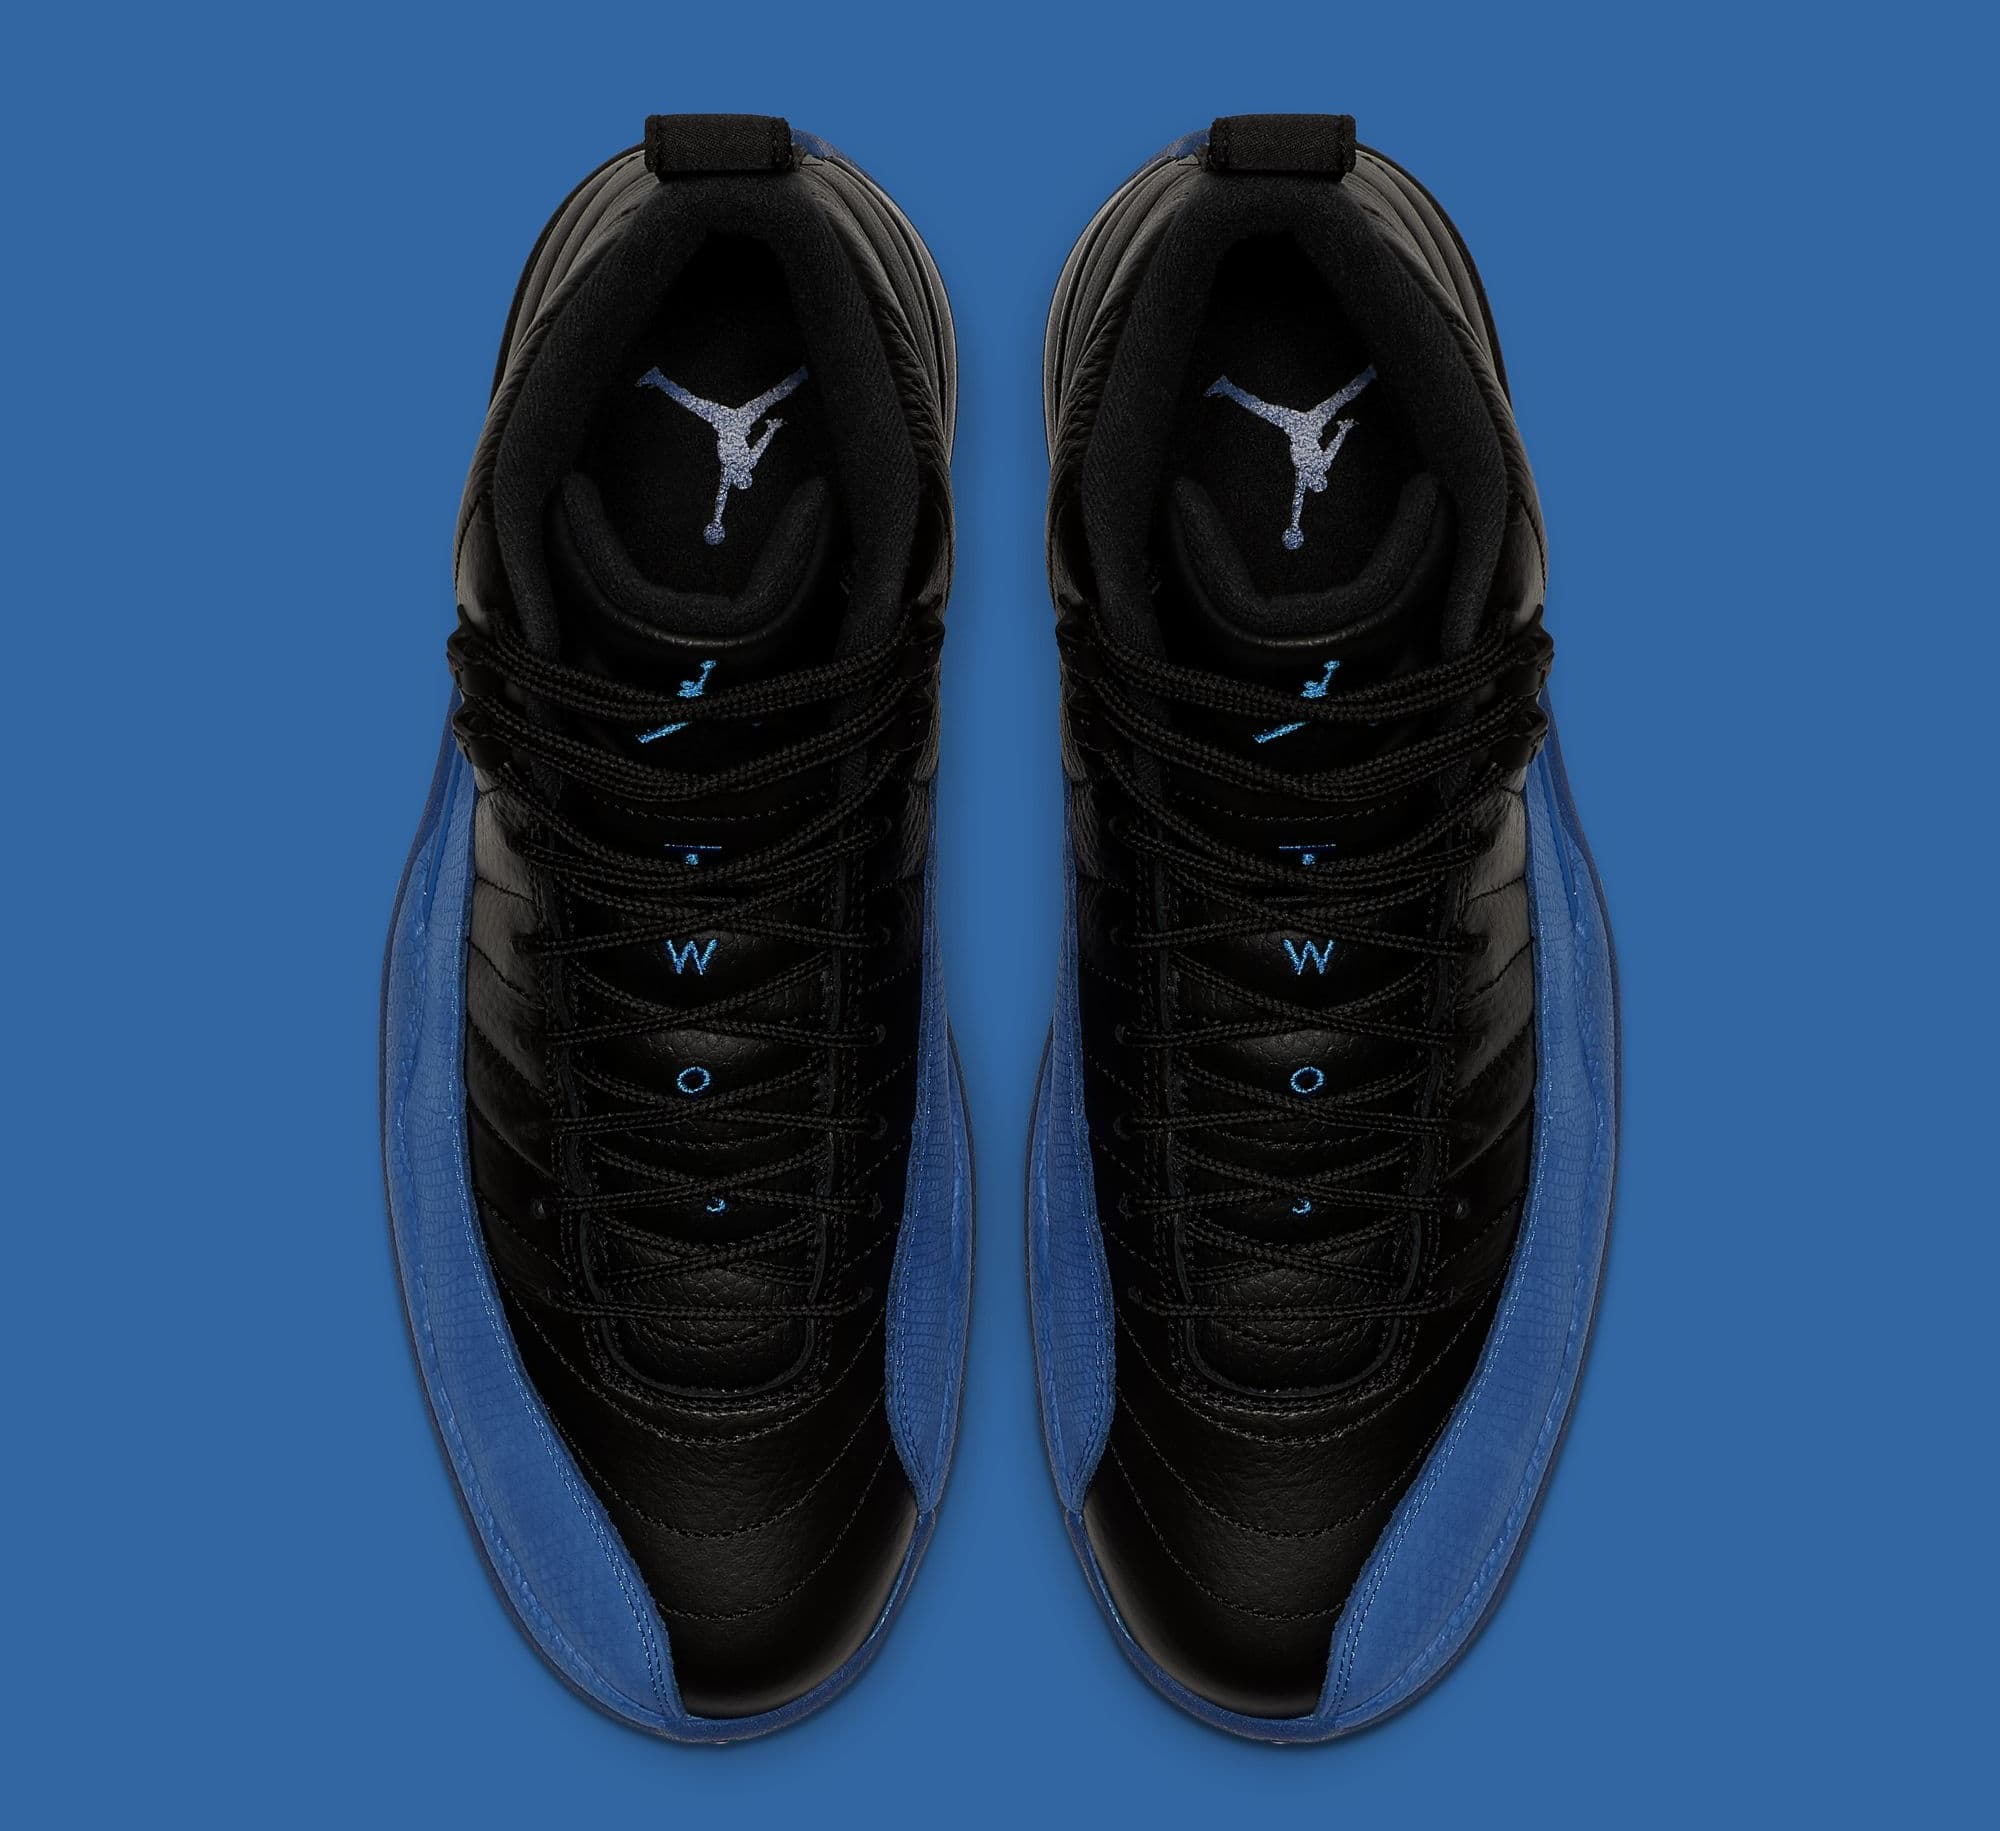 NIKE AIR JORDAN SPORTSWEAR BRAND 5 TEE BLACK GAME ROYAL